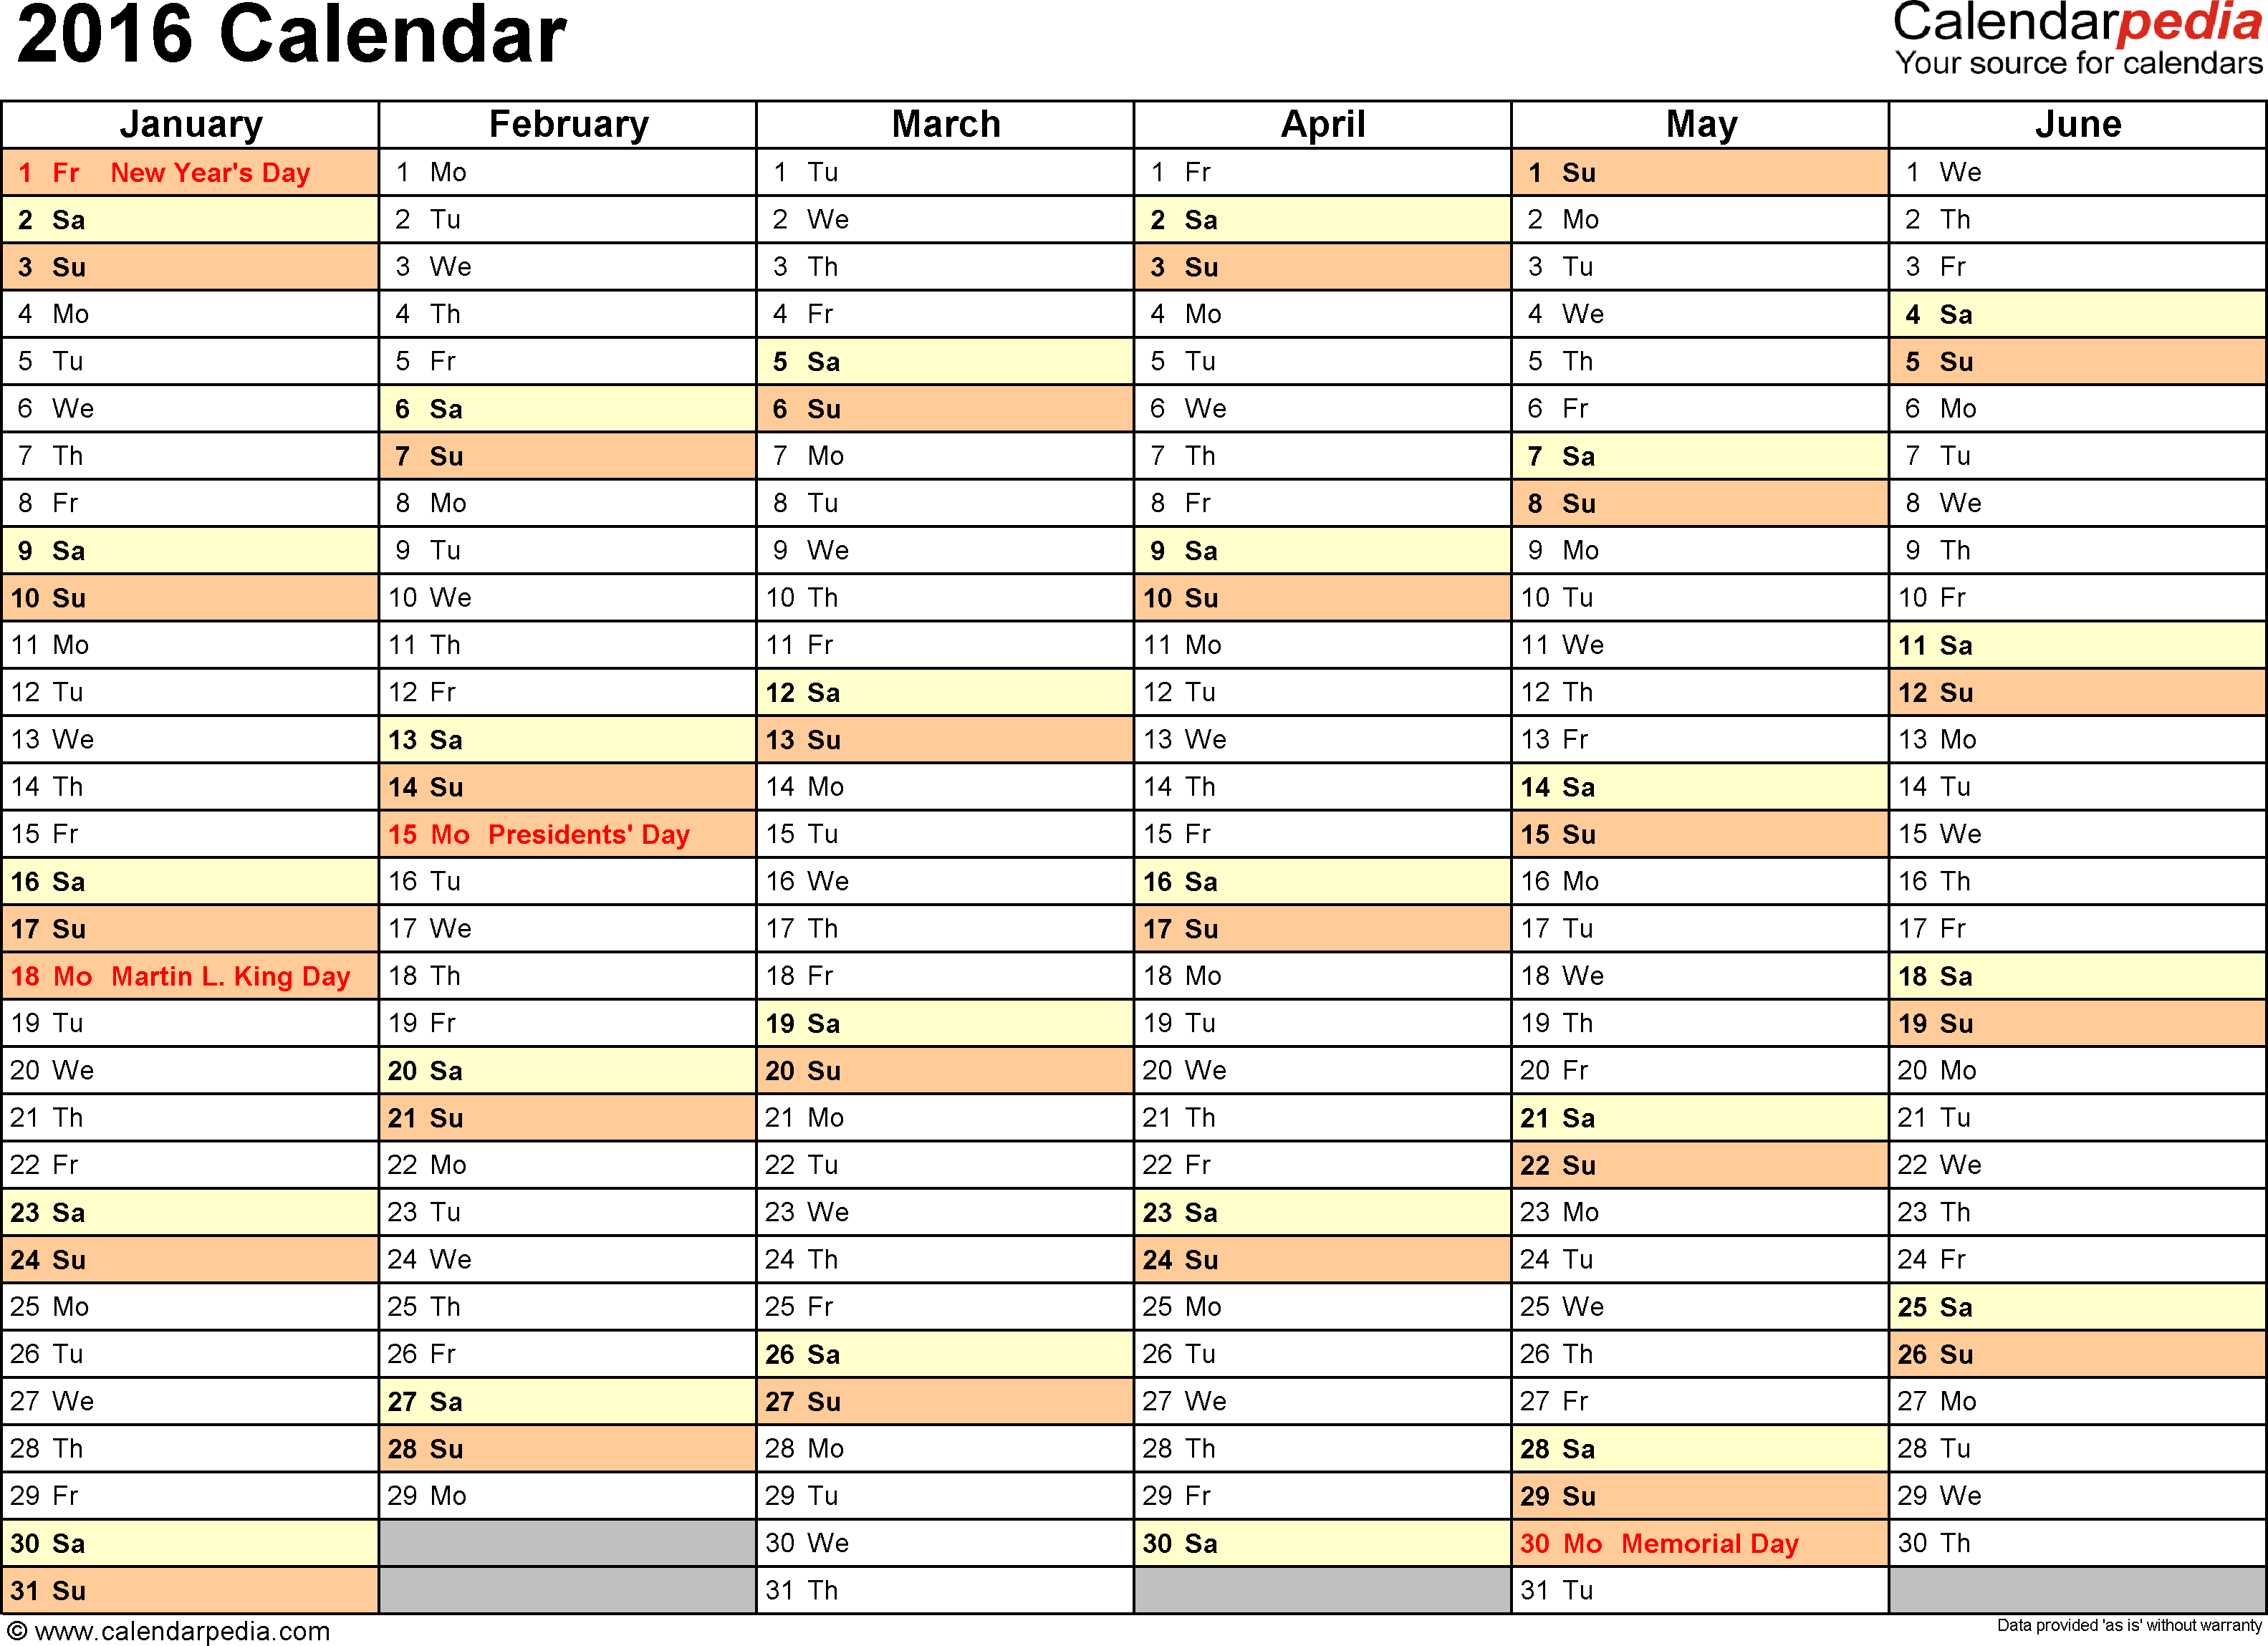 Ediblewildsus  Marvelous  Calendar  Download  Free Printable Excel Templates Xls With Foxy Template   Calendar For Excel Months Horizontally  Pages Landscape Orientation With Amusing How To Use The Round Function In Excel Also Excel Vba Mod Function In Addition Excel Range Lookup And Graph A Function In Excel As Well As Developer Tab Excel  Additionally Formula To Add Columns In Excel From Calendarpediacom With Ediblewildsus  Foxy  Calendar  Download  Free Printable Excel Templates Xls With Amusing Template   Calendar For Excel Months Horizontally  Pages Landscape Orientation And Marvelous How To Use The Round Function In Excel Also Excel Vba Mod Function In Addition Excel Range Lookup From Calendarpediacom